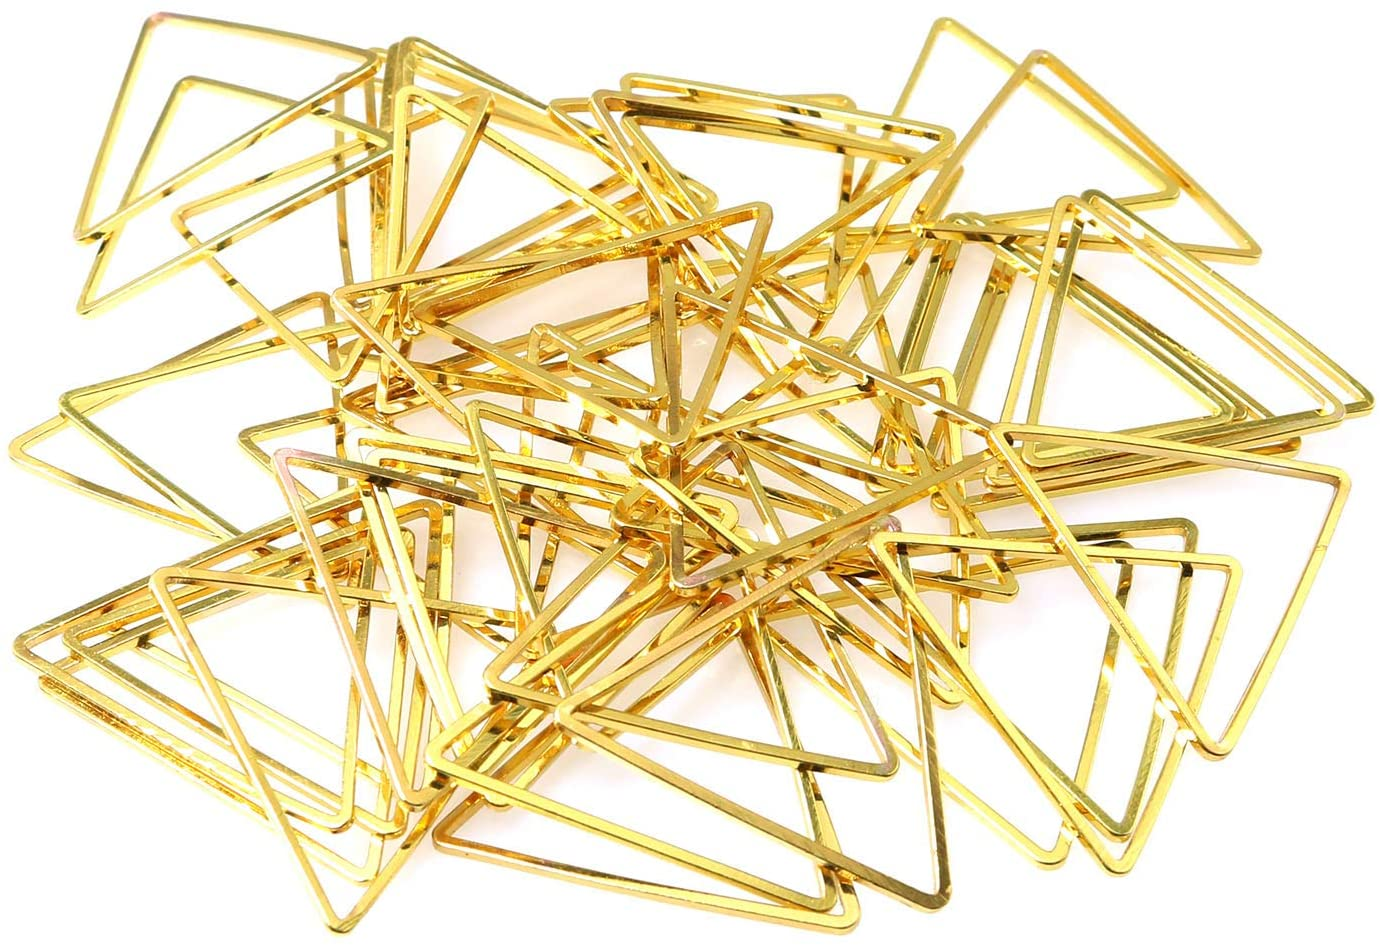 RLECS 50pcs 0.94in Golden DIY Triangle Earrings Accessories Brass Triangle Shape Closed Rings Connect Rings Making Findings Connectors Earring Pendant Bracelet for Jewelry